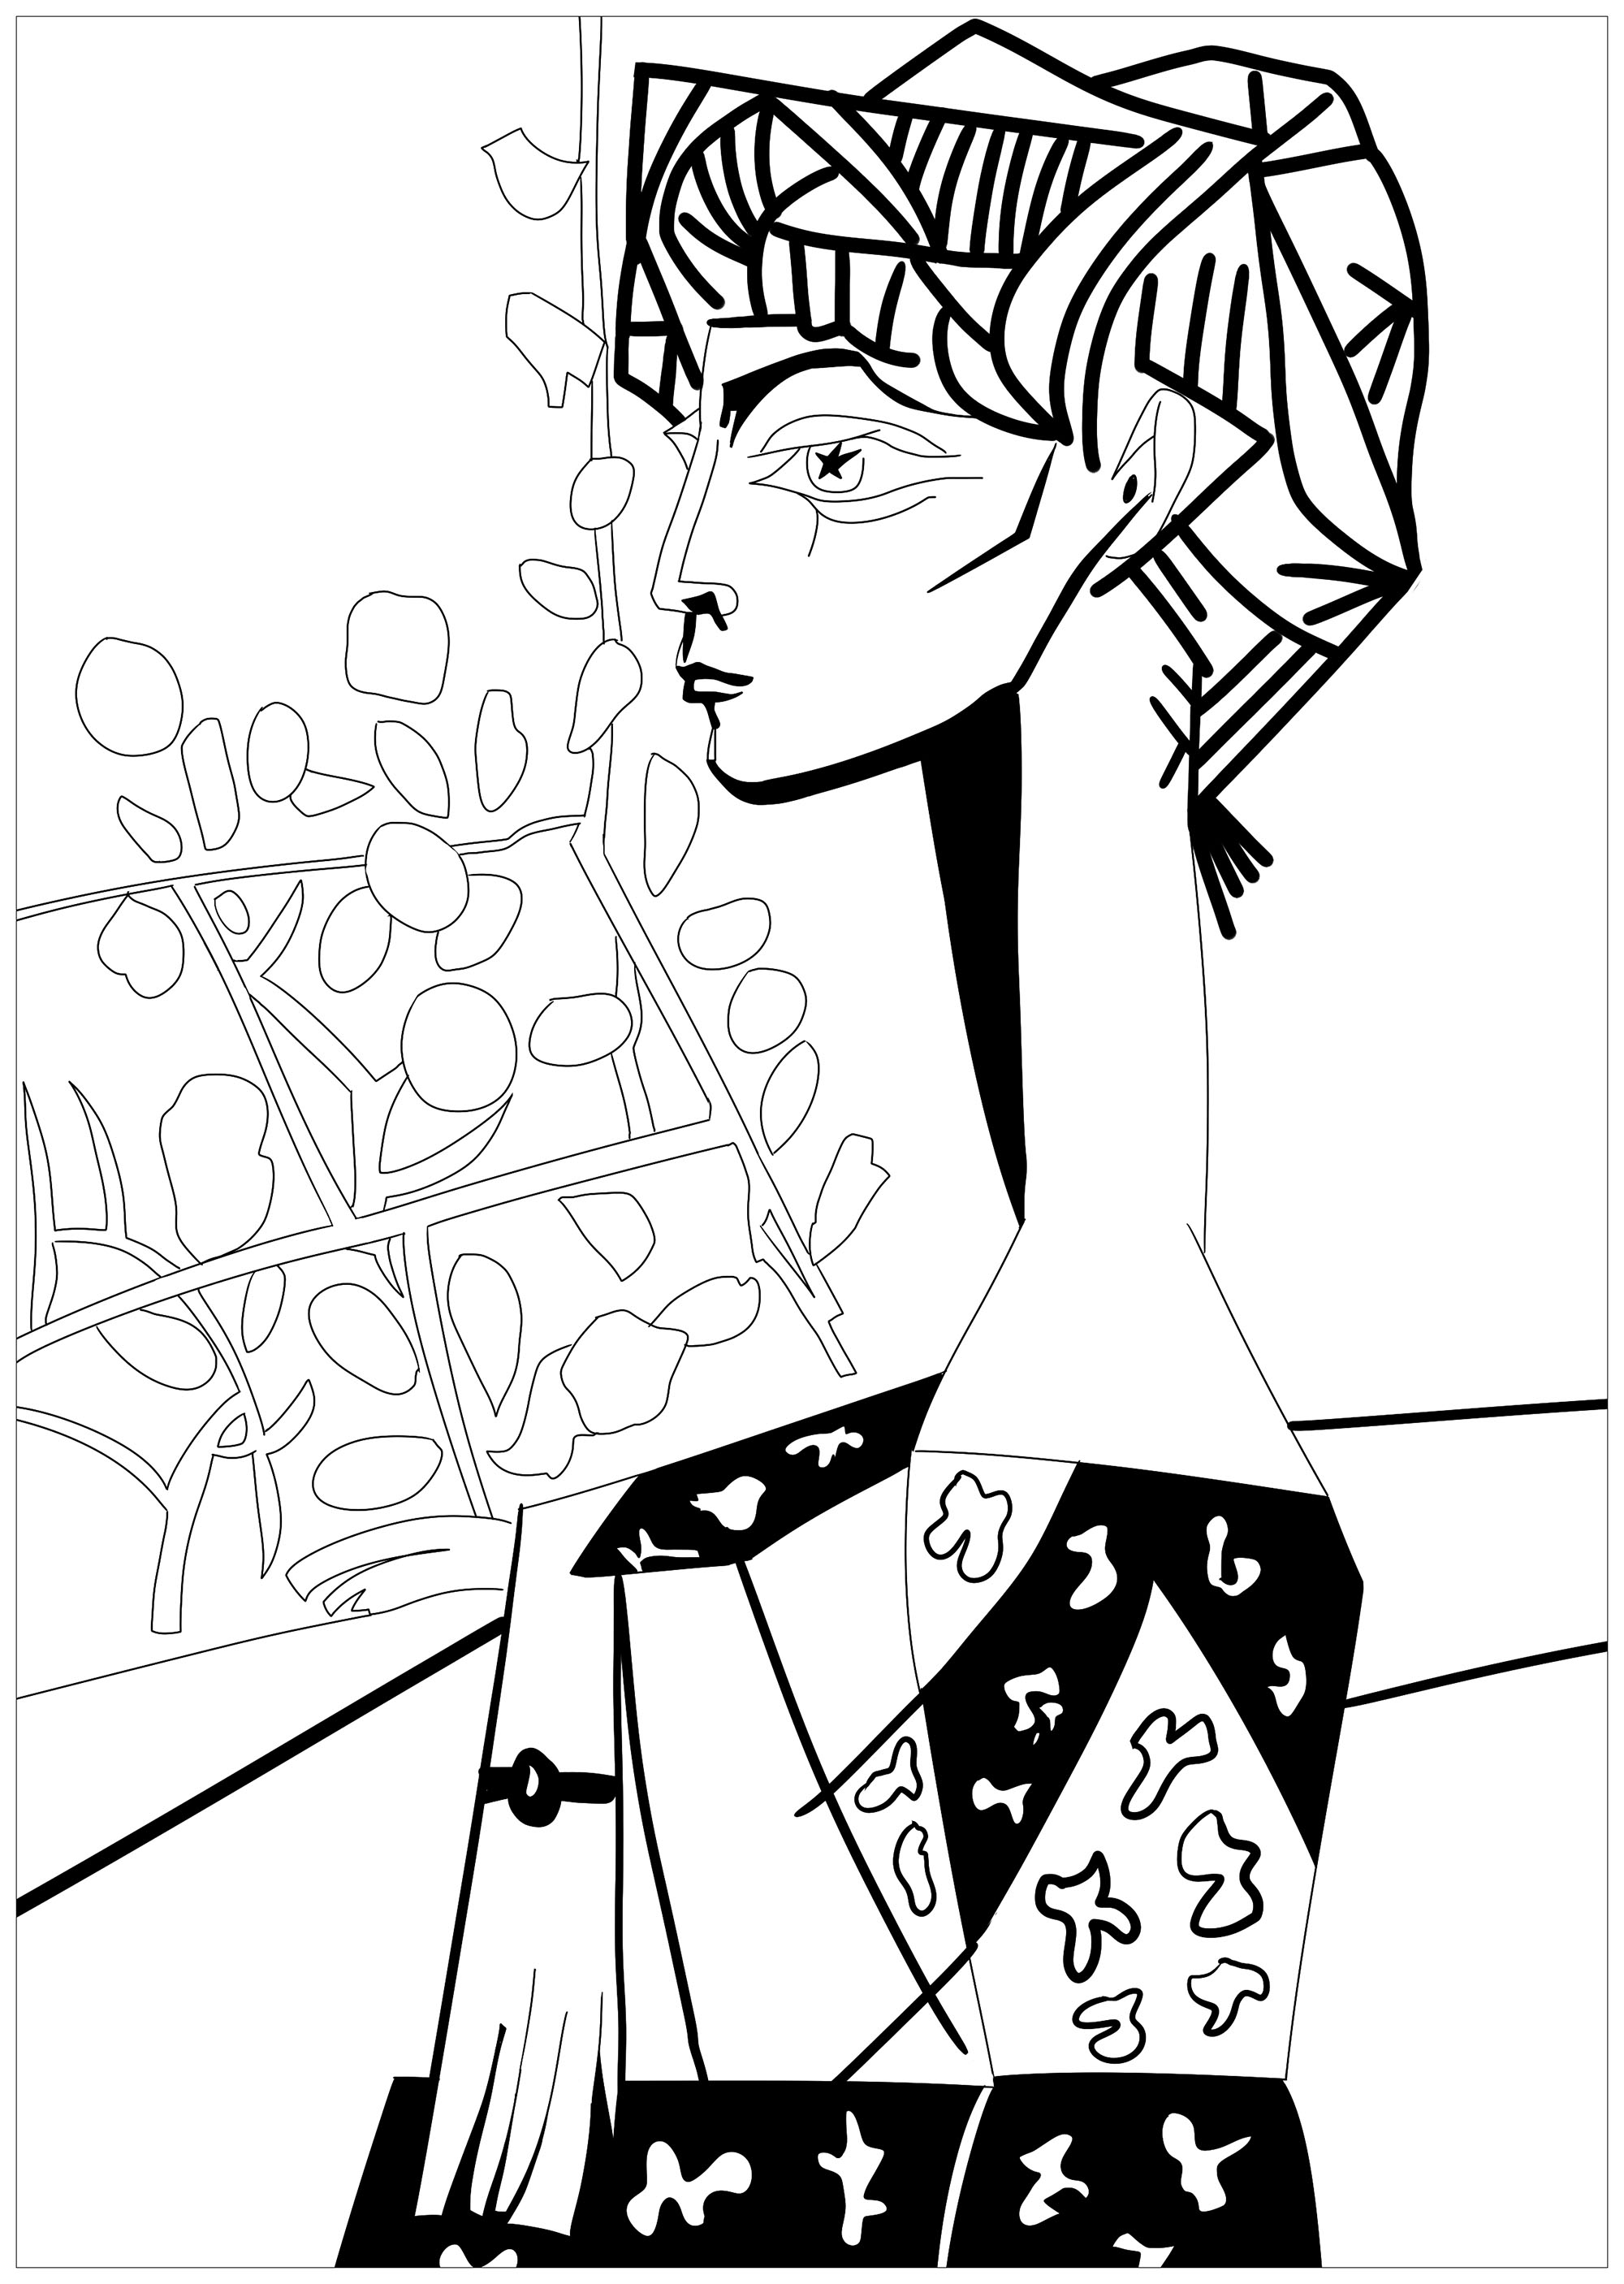 Coloring page inspired by a master piece by Pablo Picasso : Jacqueline with Flowers